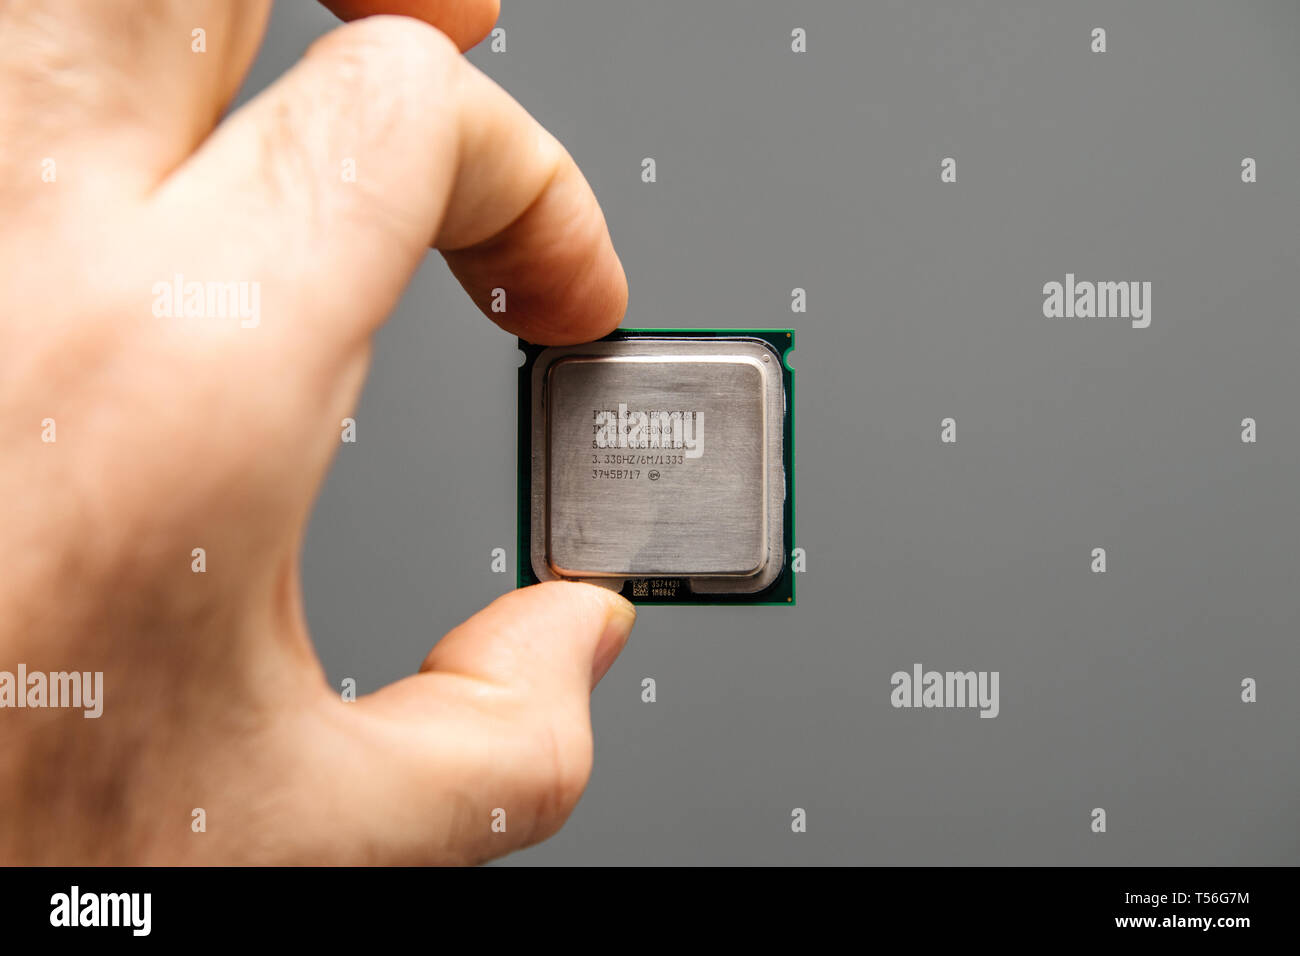 Paris, France - Apr 9, 2019: Male IT professional holding in hand new powerful CPU Central processing unit with high core count and elevated frequency Intel Xeon X5268 - Stock Image